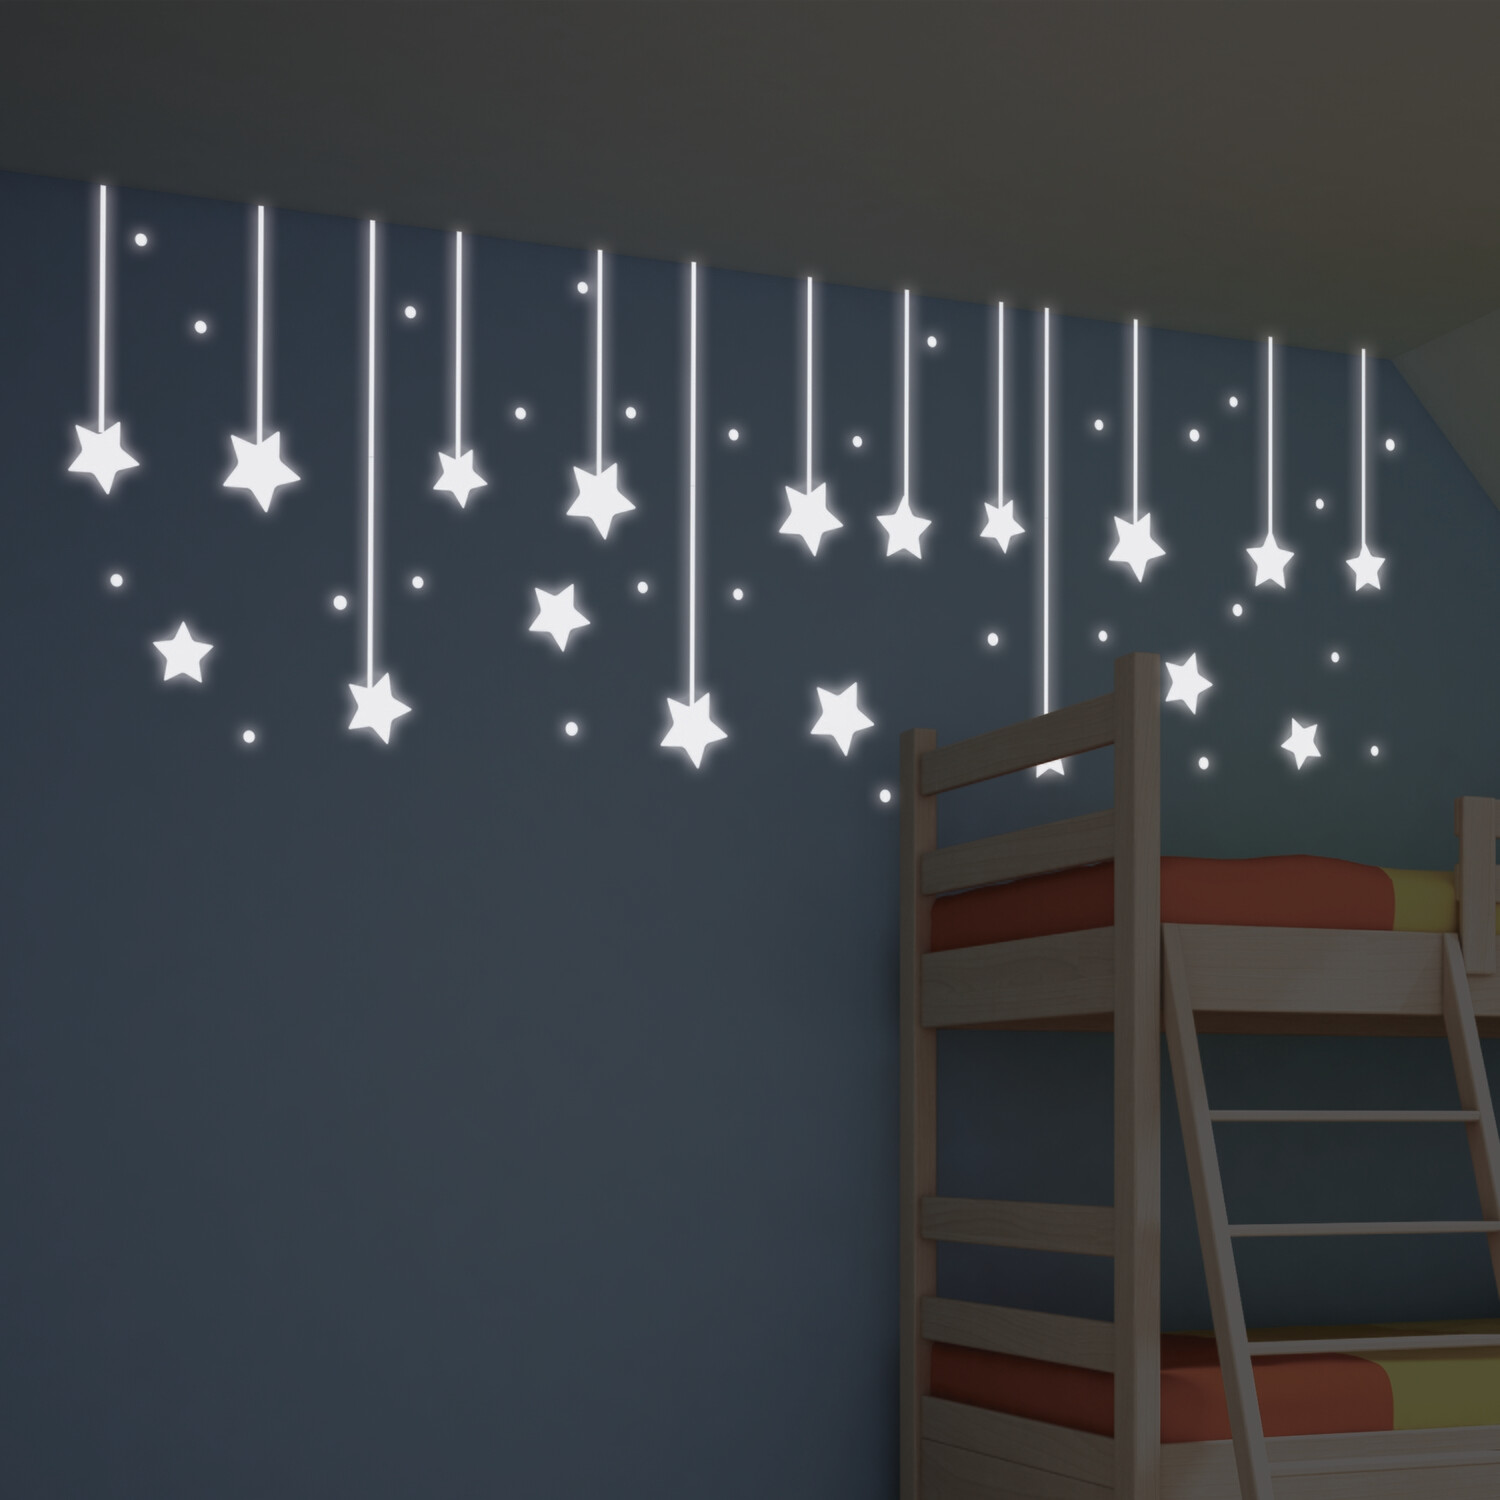 Hanging Stars Self Adhesive Wall Stickers Glow